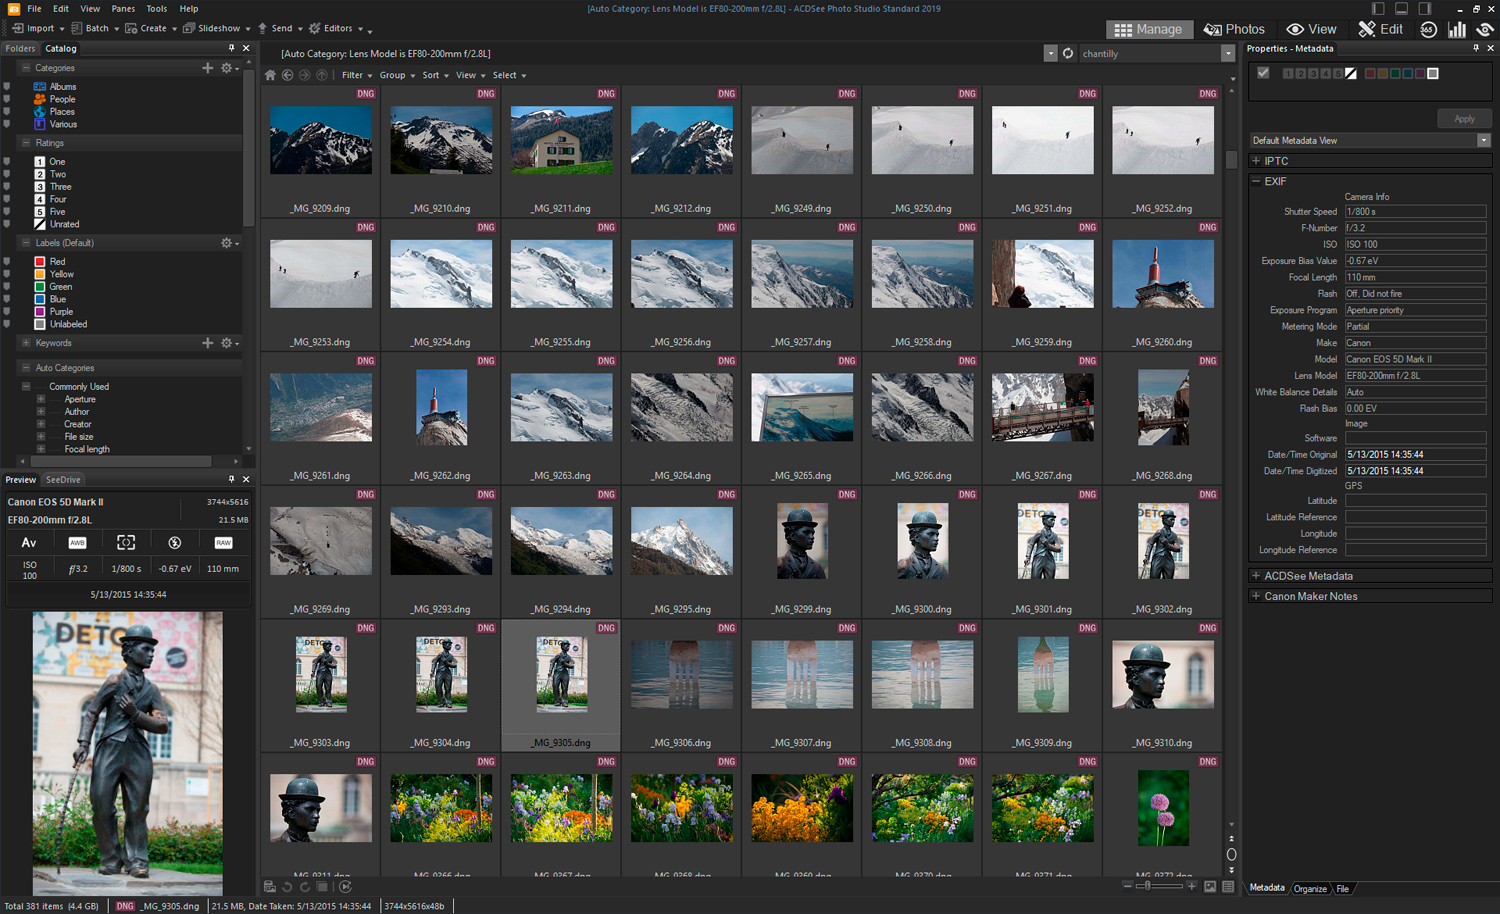 cataloging photos with ACDSee software